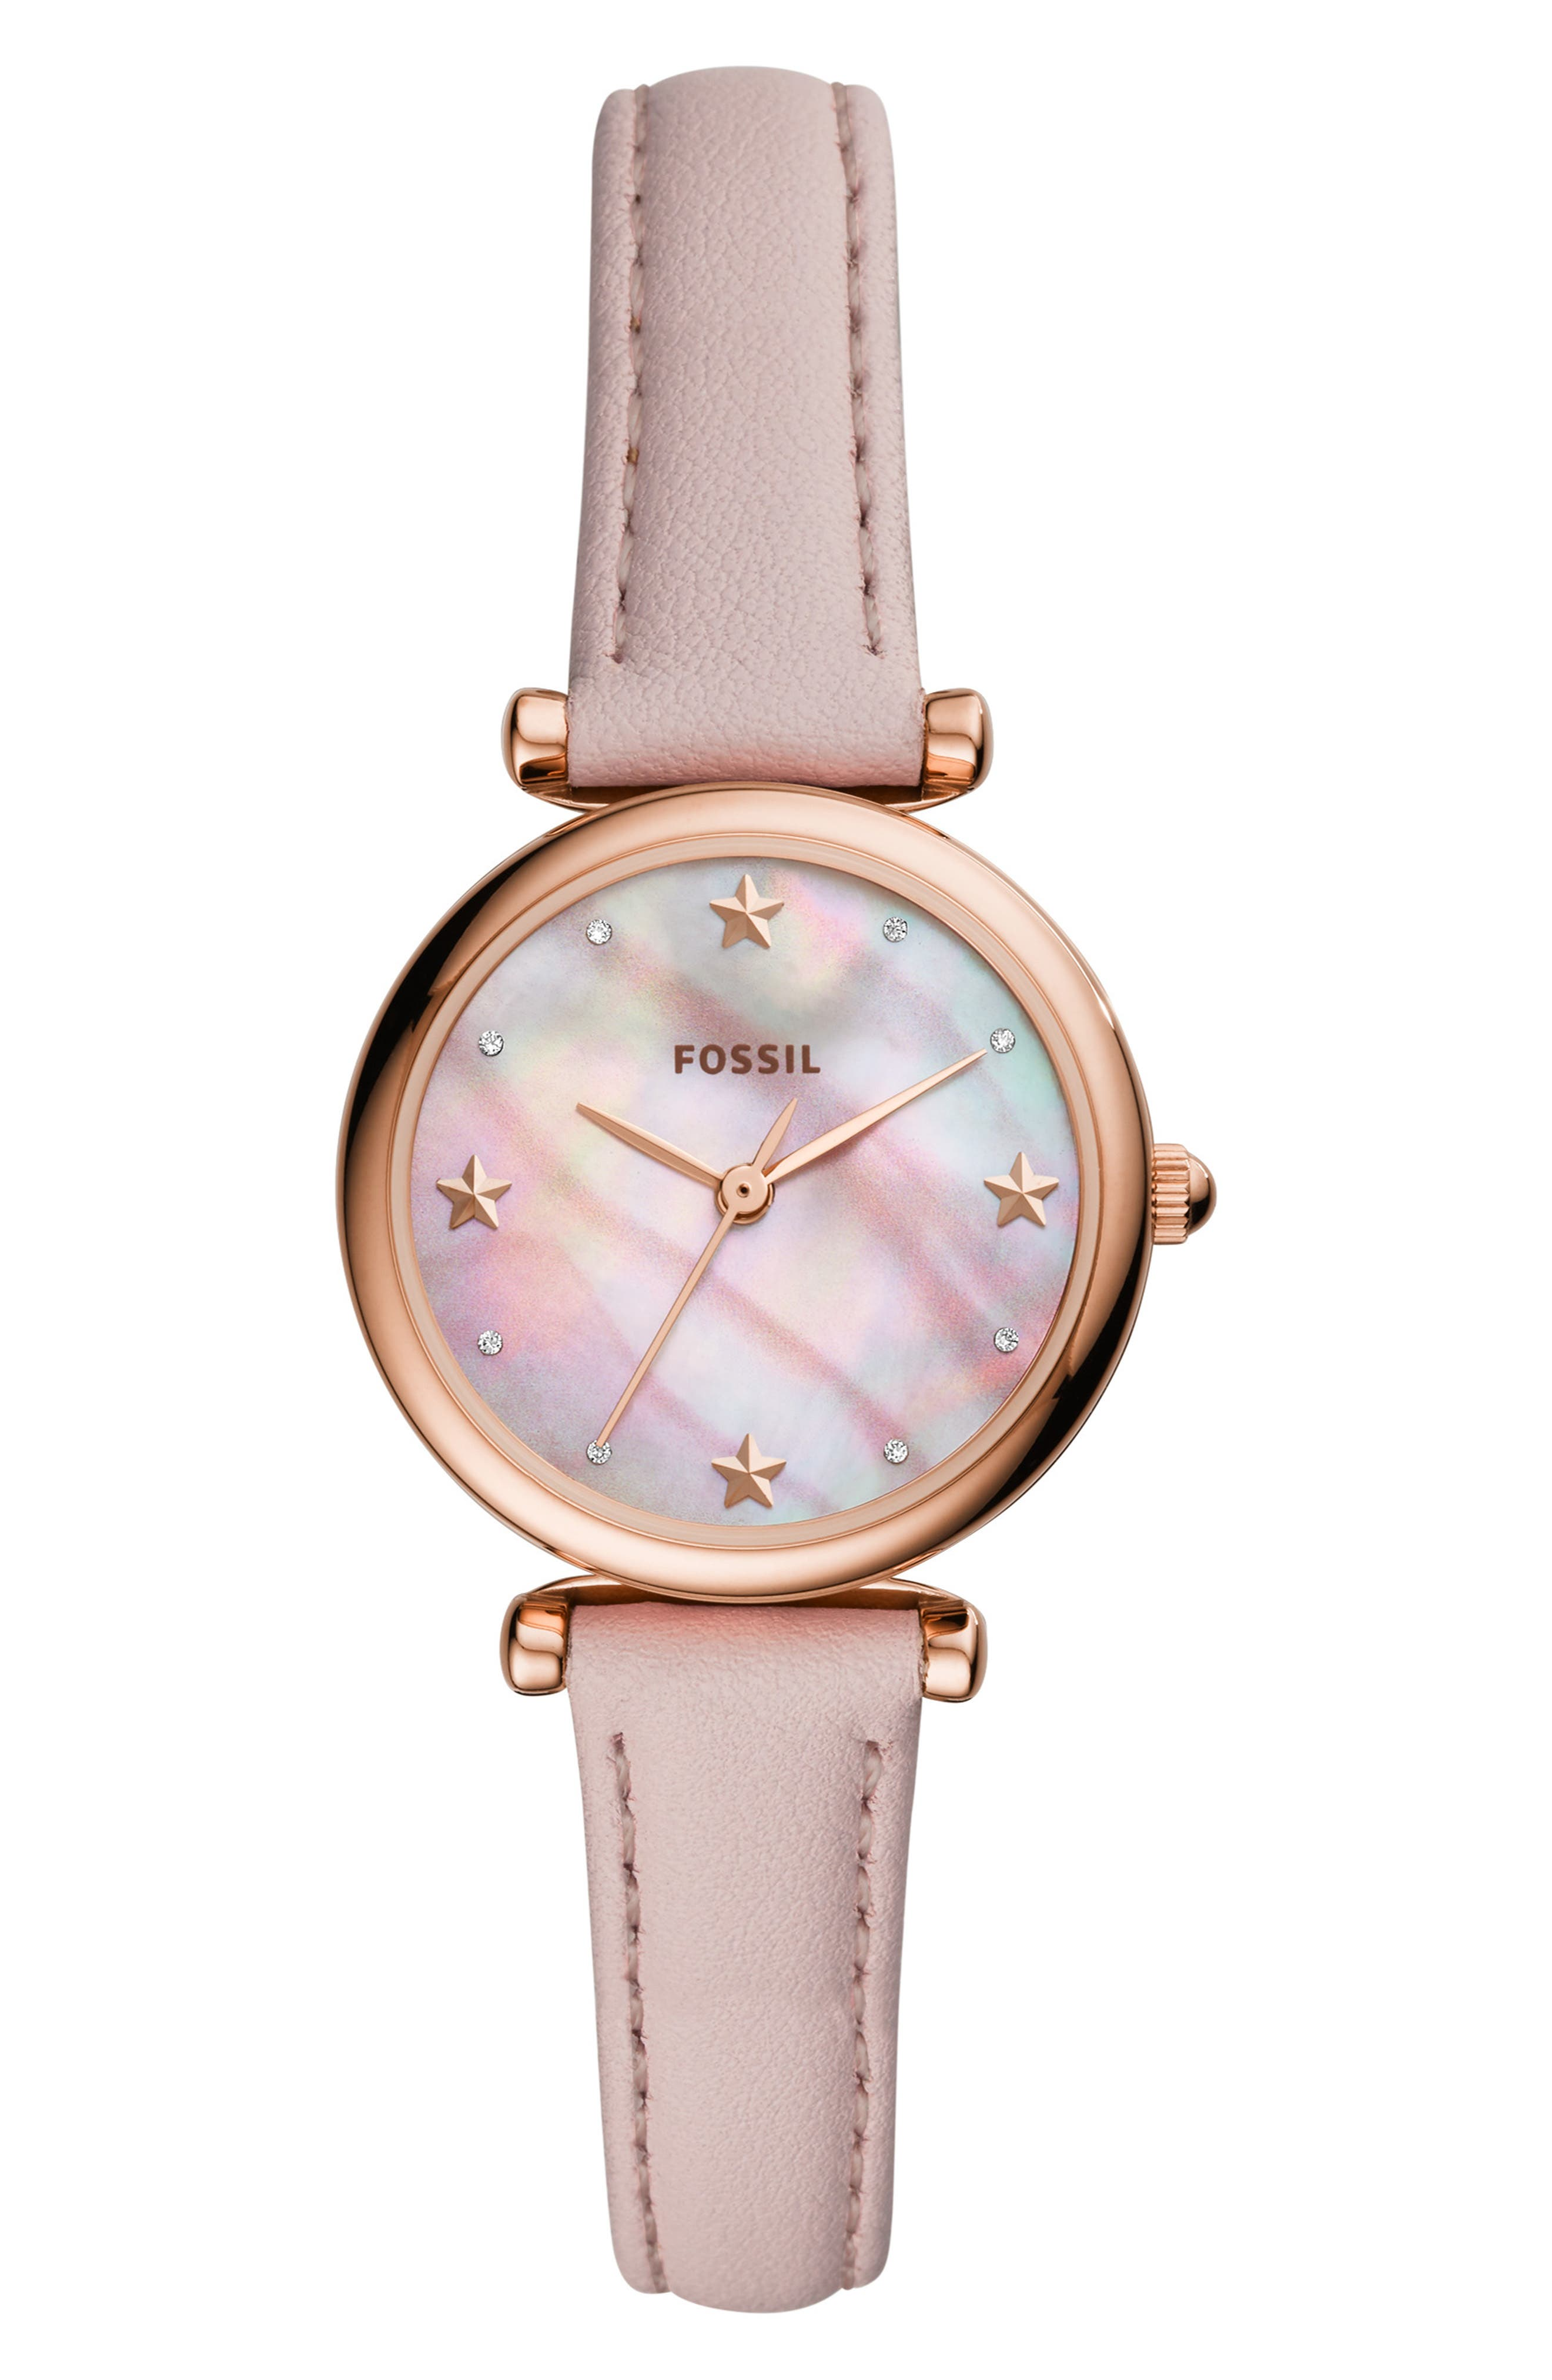 FOSSIL, Mini Carlie Star Leather Strap Watch, 28mm, Main thumbnail 1, color, 650